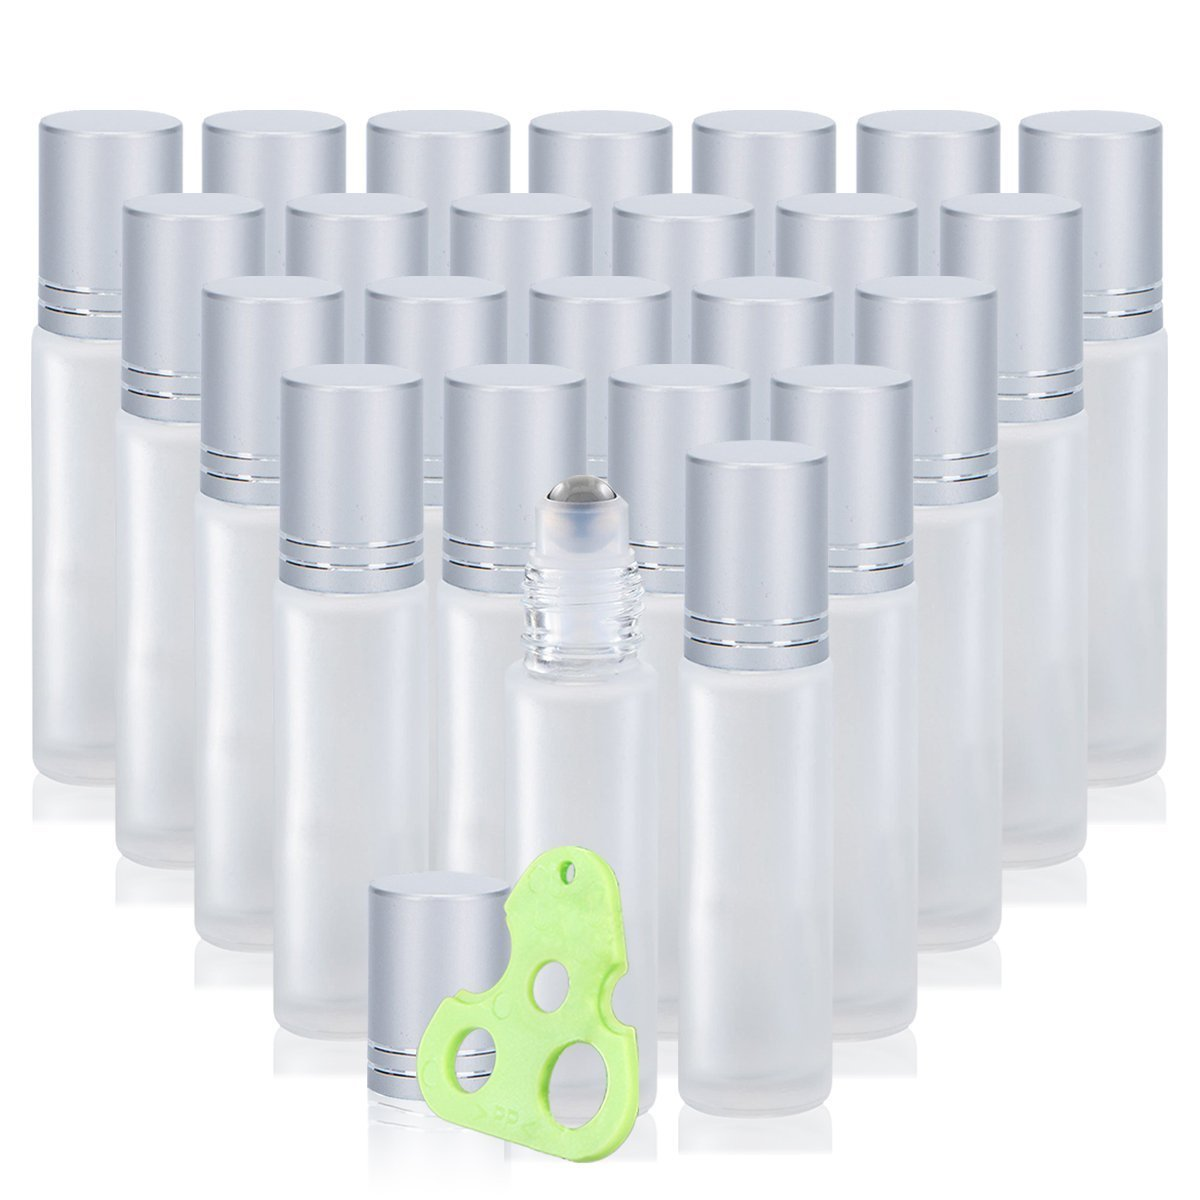 Olilia 10 ml Frosted Glass Roll on Bottles with Metal Roller Balls, 24 Pack, Essential Oils Opener